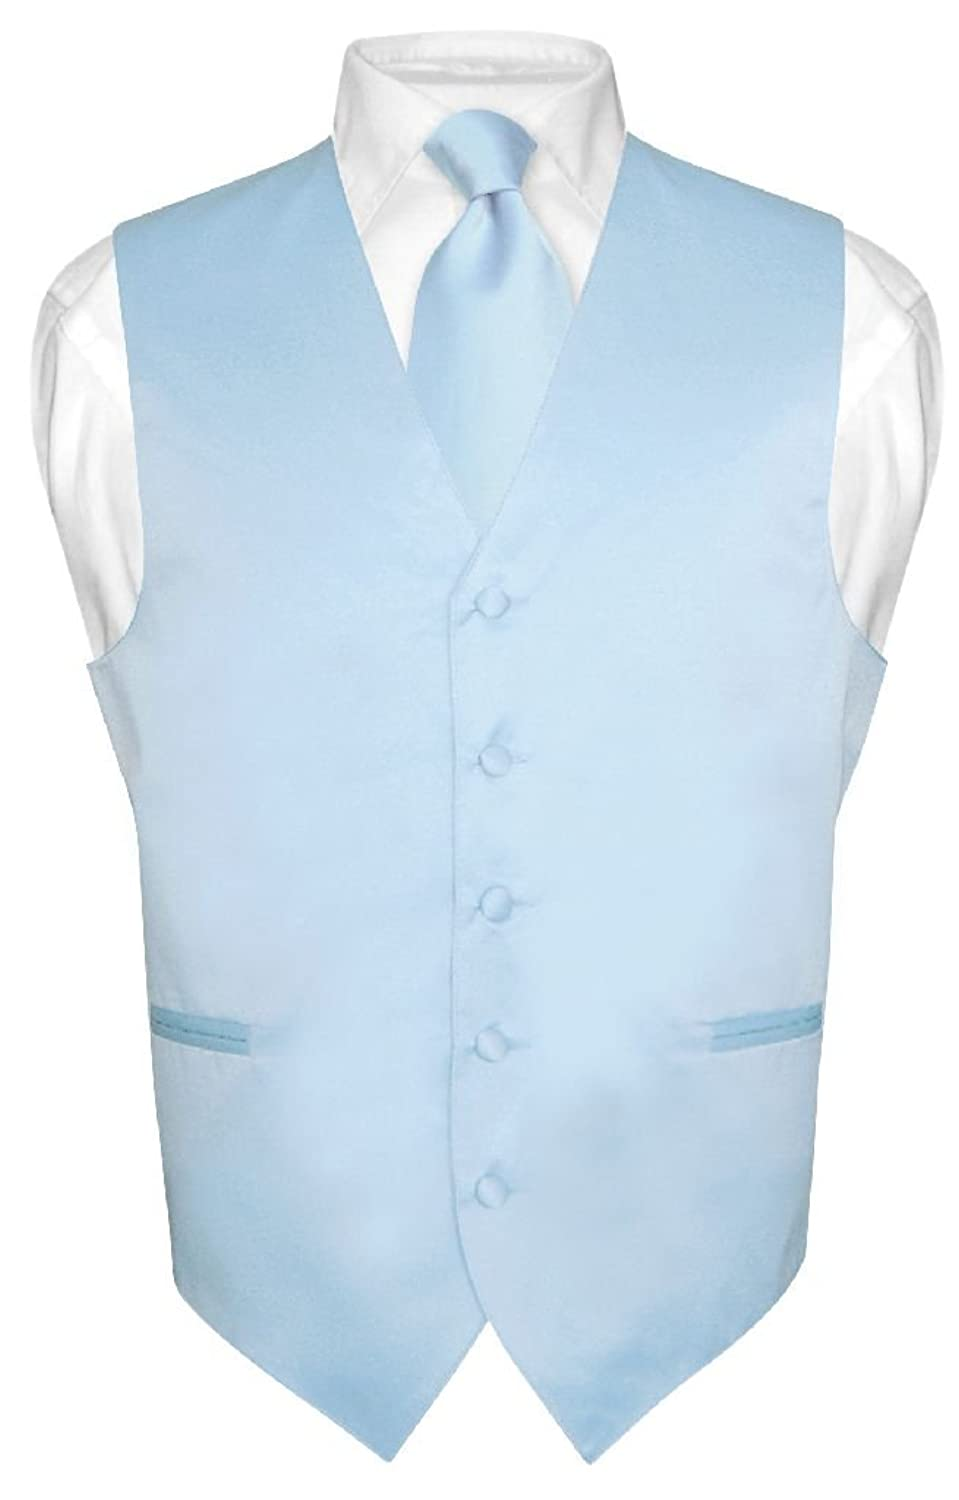 465a642f62 70%OFF Men's Dress Vest & NeckTie Solid BABY BLUE Color Neck Tie Set for